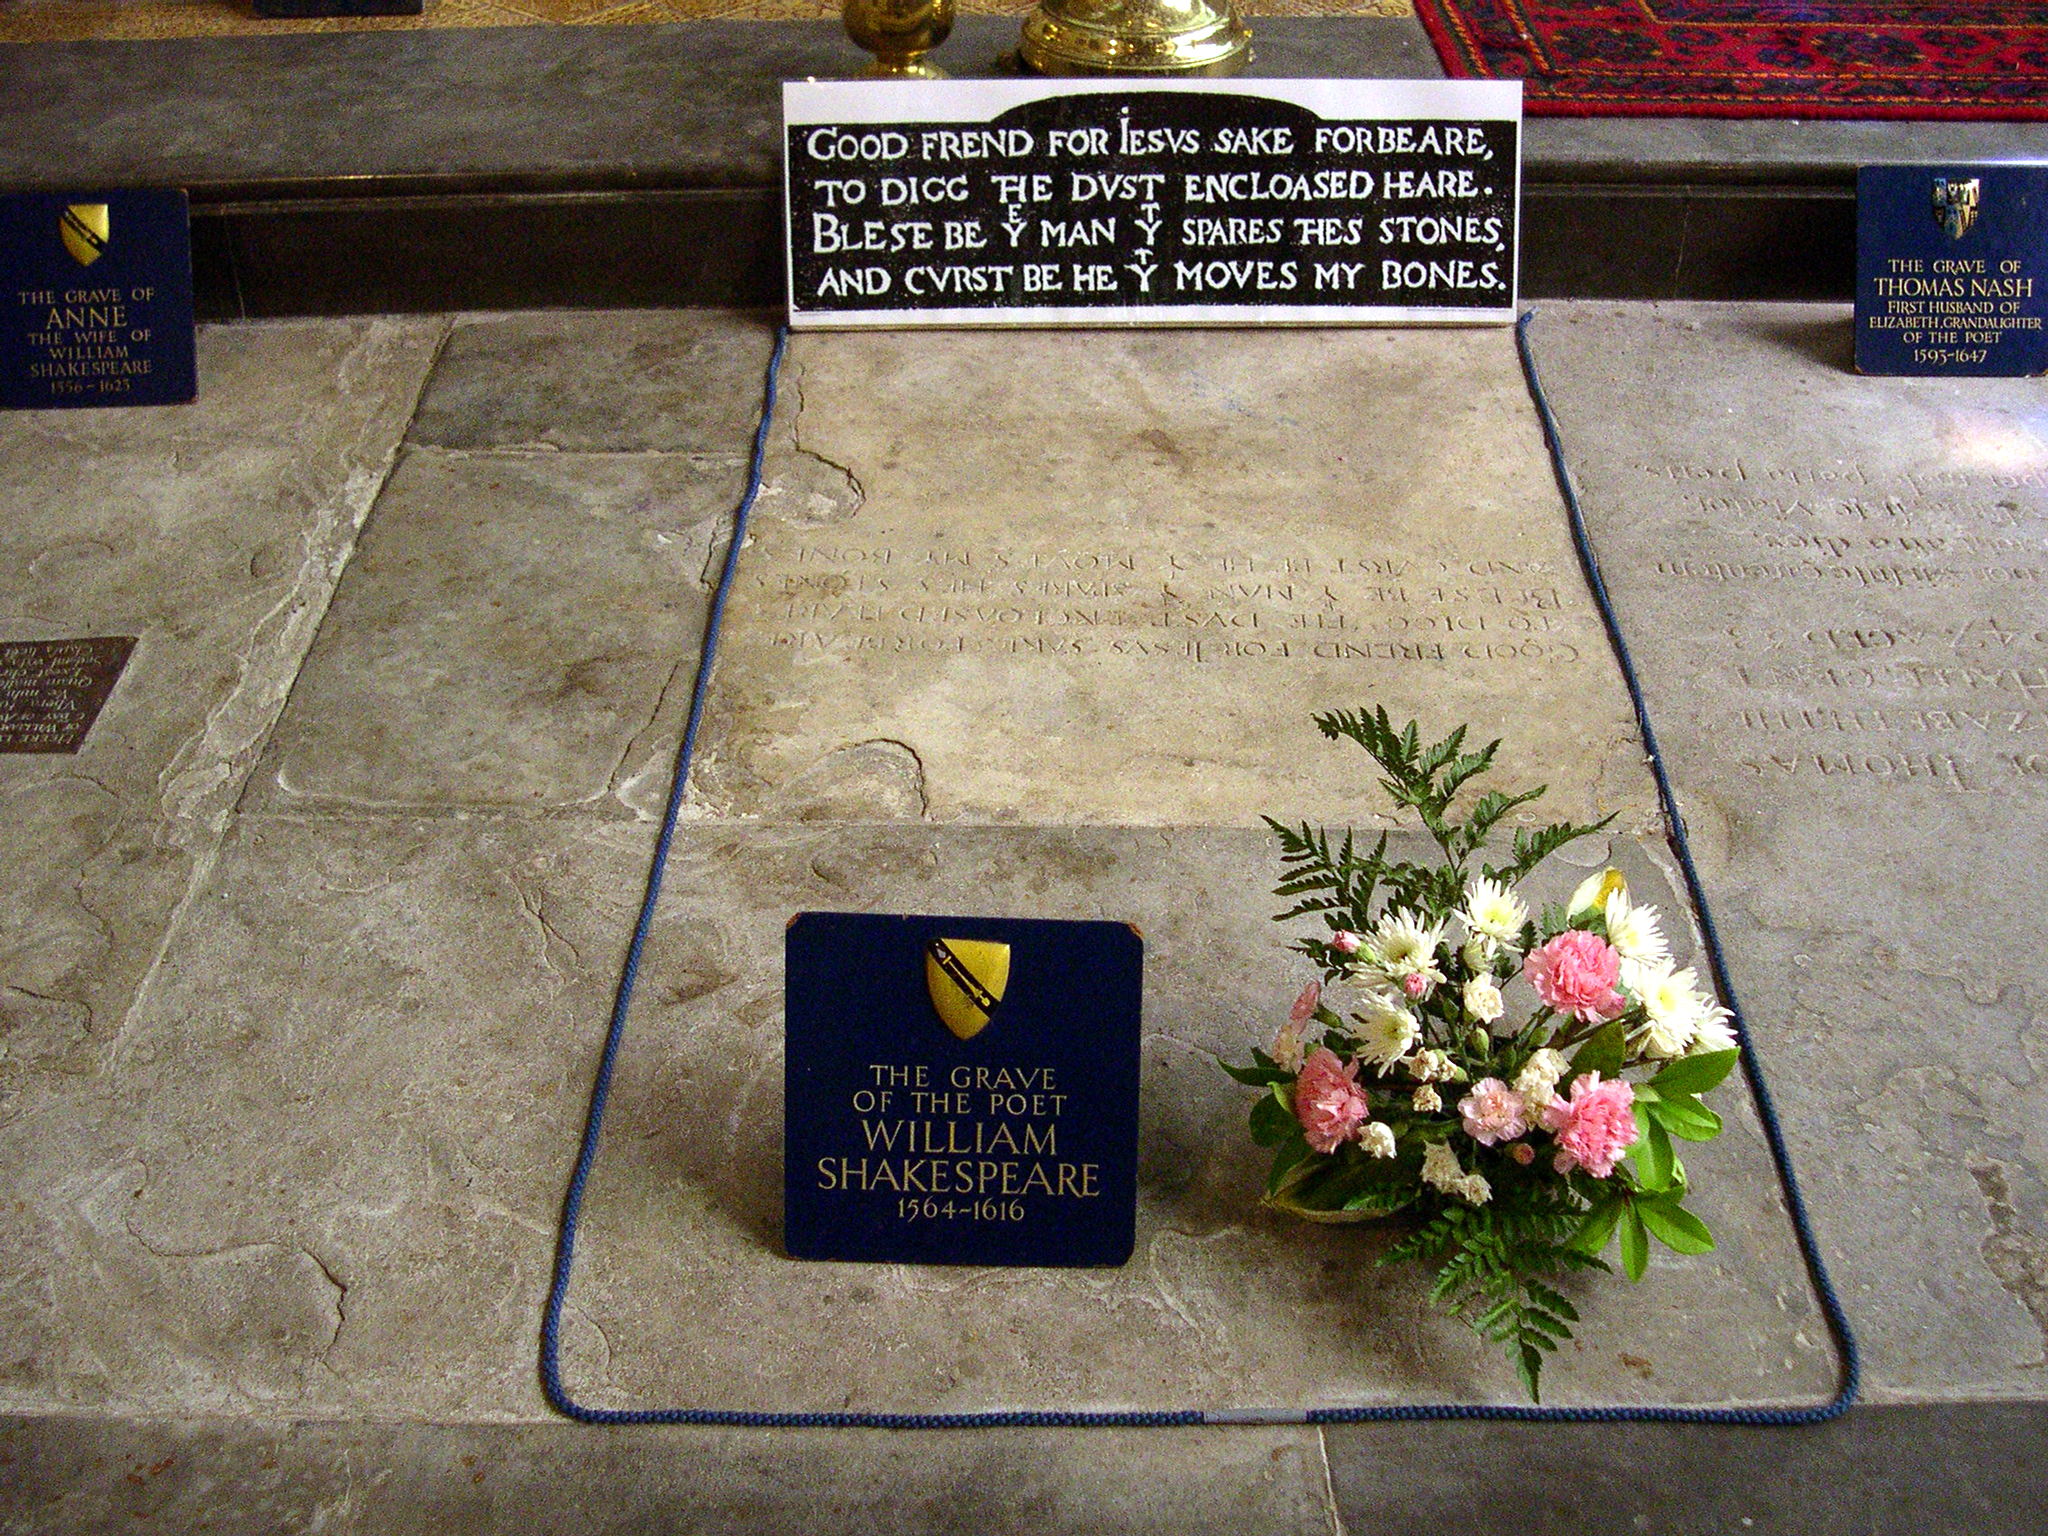 Tumba de Shakespeare en la Holy Trinity Church de Stratford-upon-Avon.